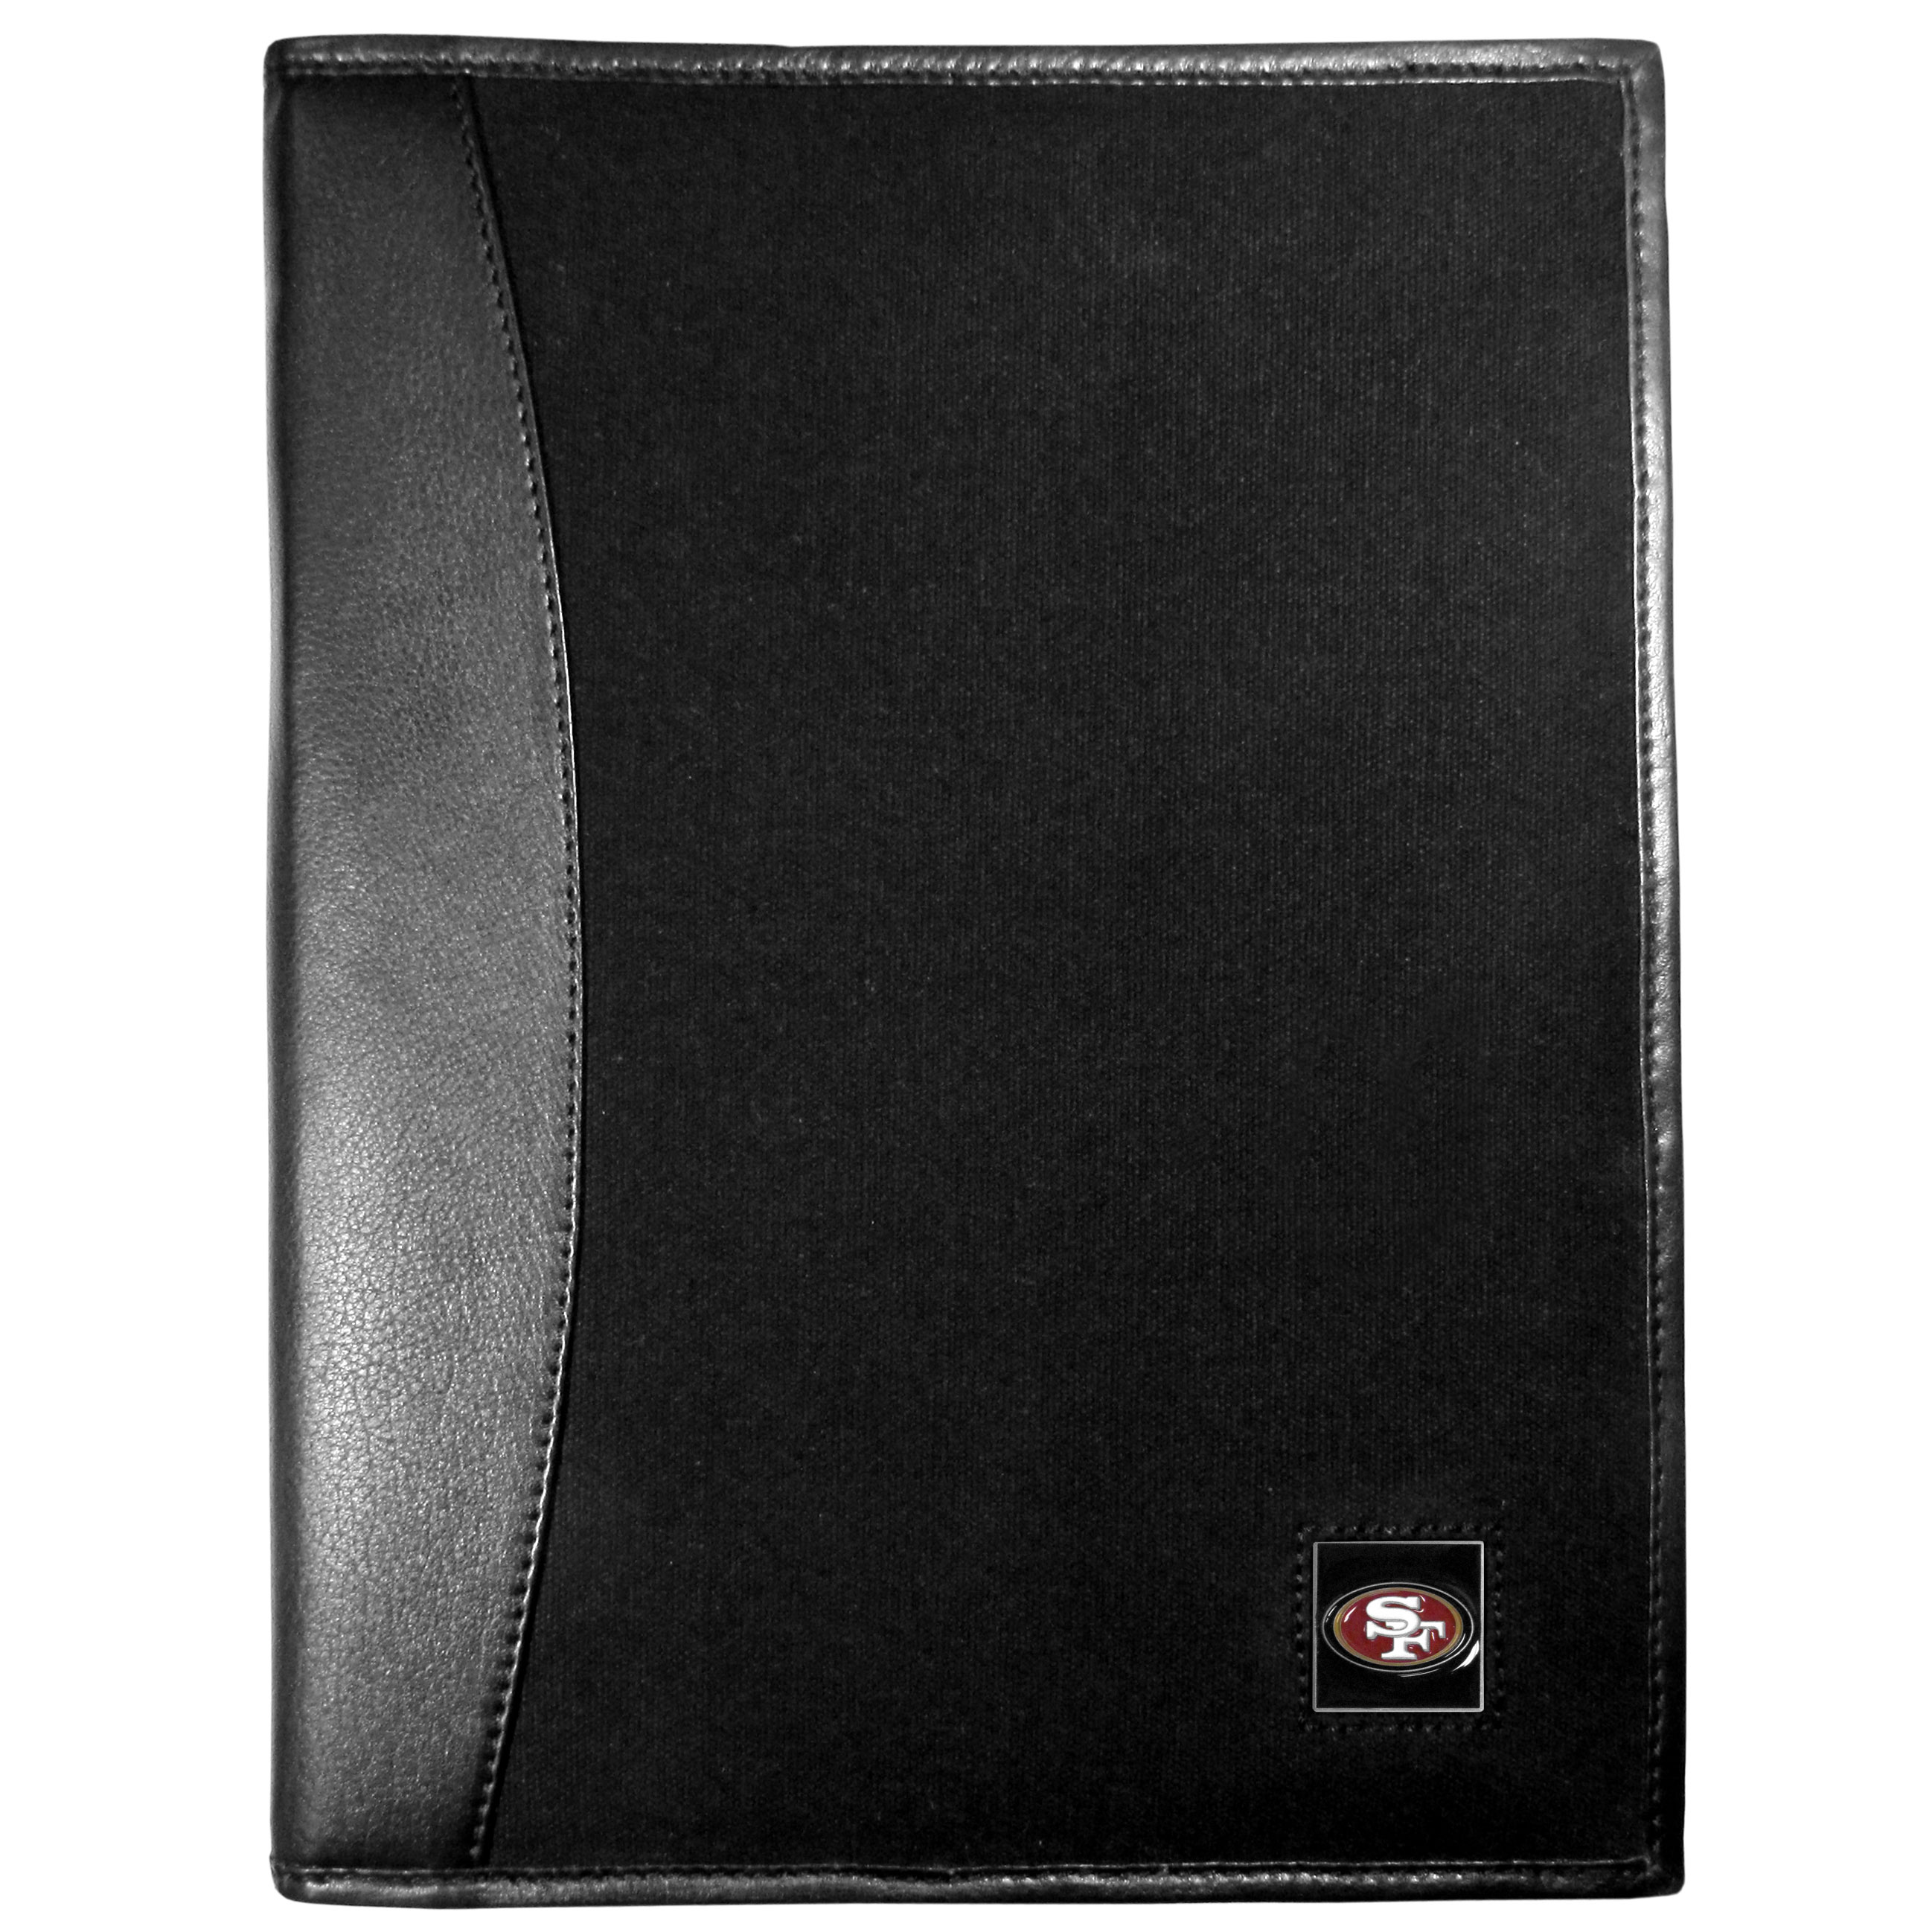 San Francisco 49ers Leather and Canvas Padfolio - Our leather and canvas padfolio perfectly blends form and function. The attractive portfolio is bound in fine grain leather with an attractive canvas finish and the interior is a soft nylon. This high quality business accessory also features a fully cast metal San Francisco 49ers emblem that is subtly set in the corner of the organizer. It is packed with features like 6 card slots for badges, business cards, hotel keys or credit cards and ID with a large pocket for loose papers and a writing tablet slot making it a must-have for the professional on the go.